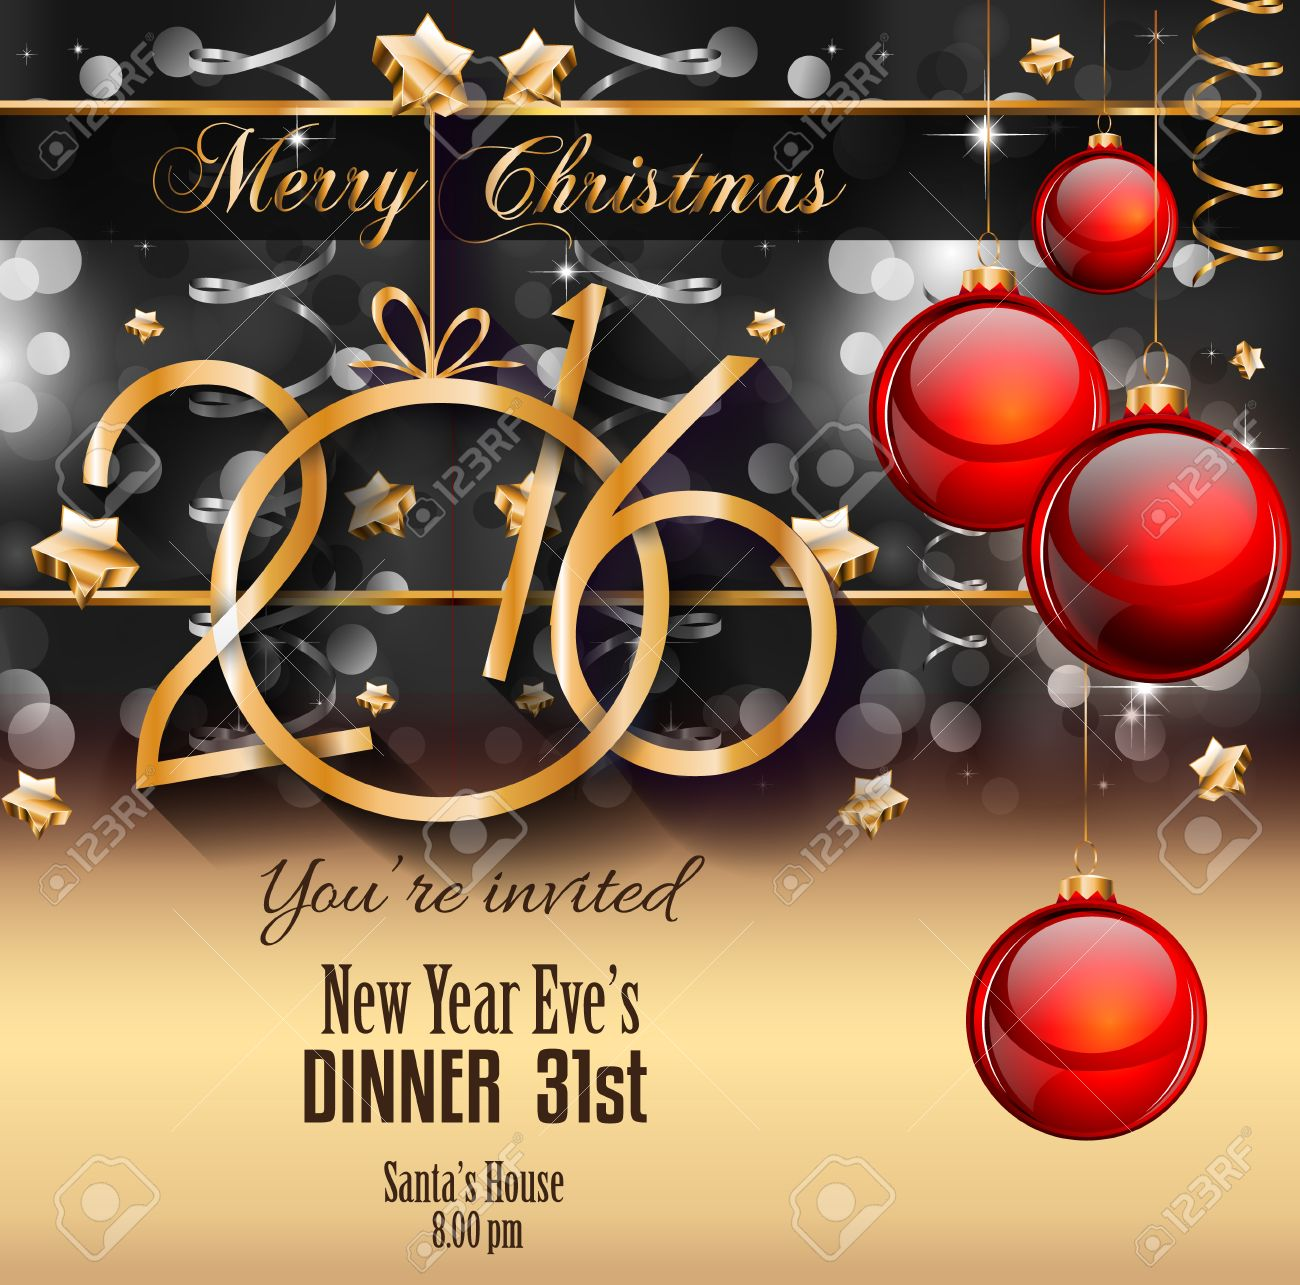 Christmas Flyers.2016 Happy New Year Background For Your Christmas Flyers Dinner